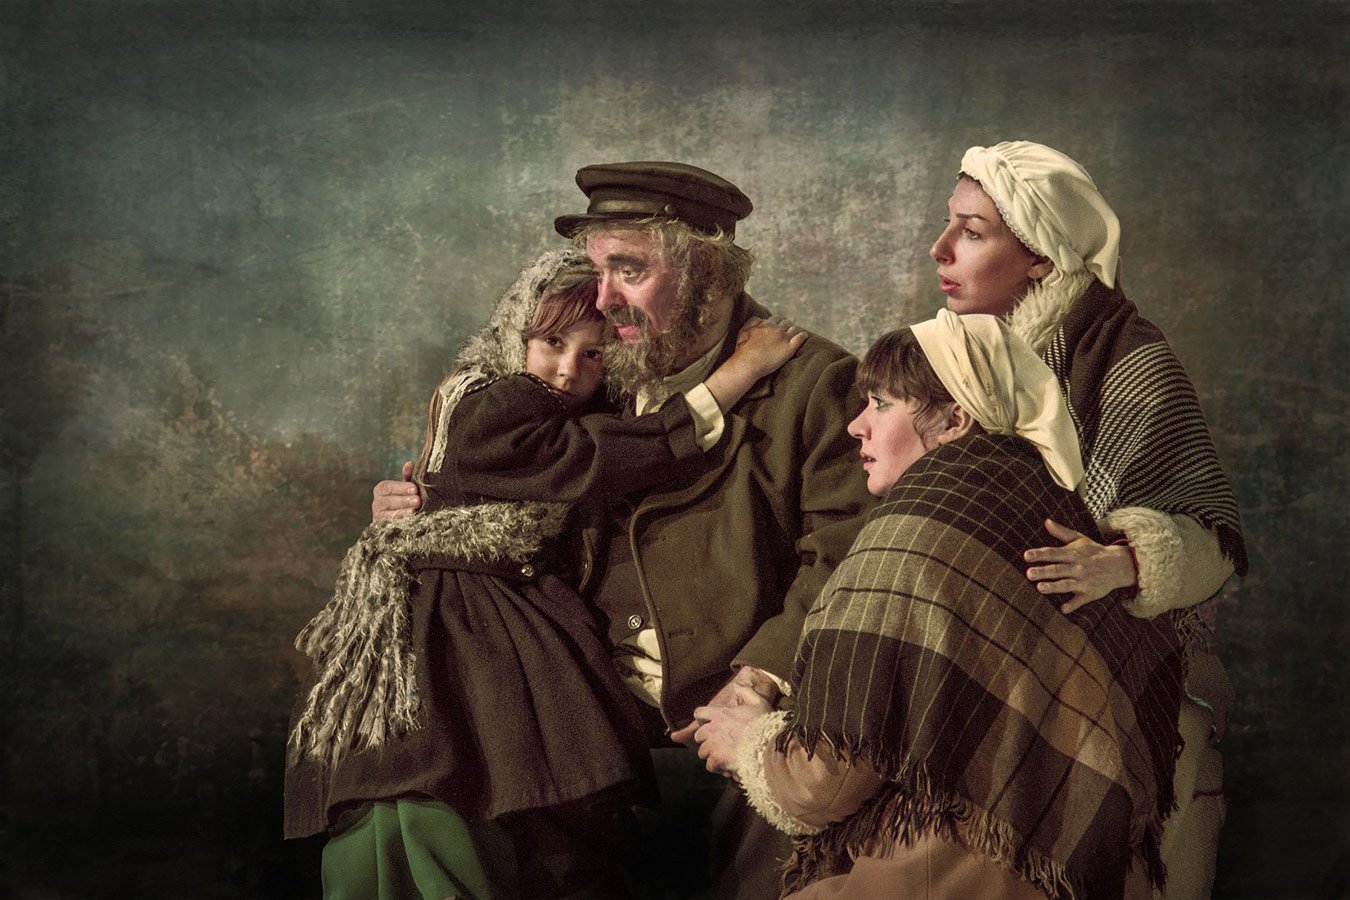 Tevye milk seller, © Vladimir Maltsev, Ukraine, PSA Gold Medal, Onyx International Exhibition of Photography